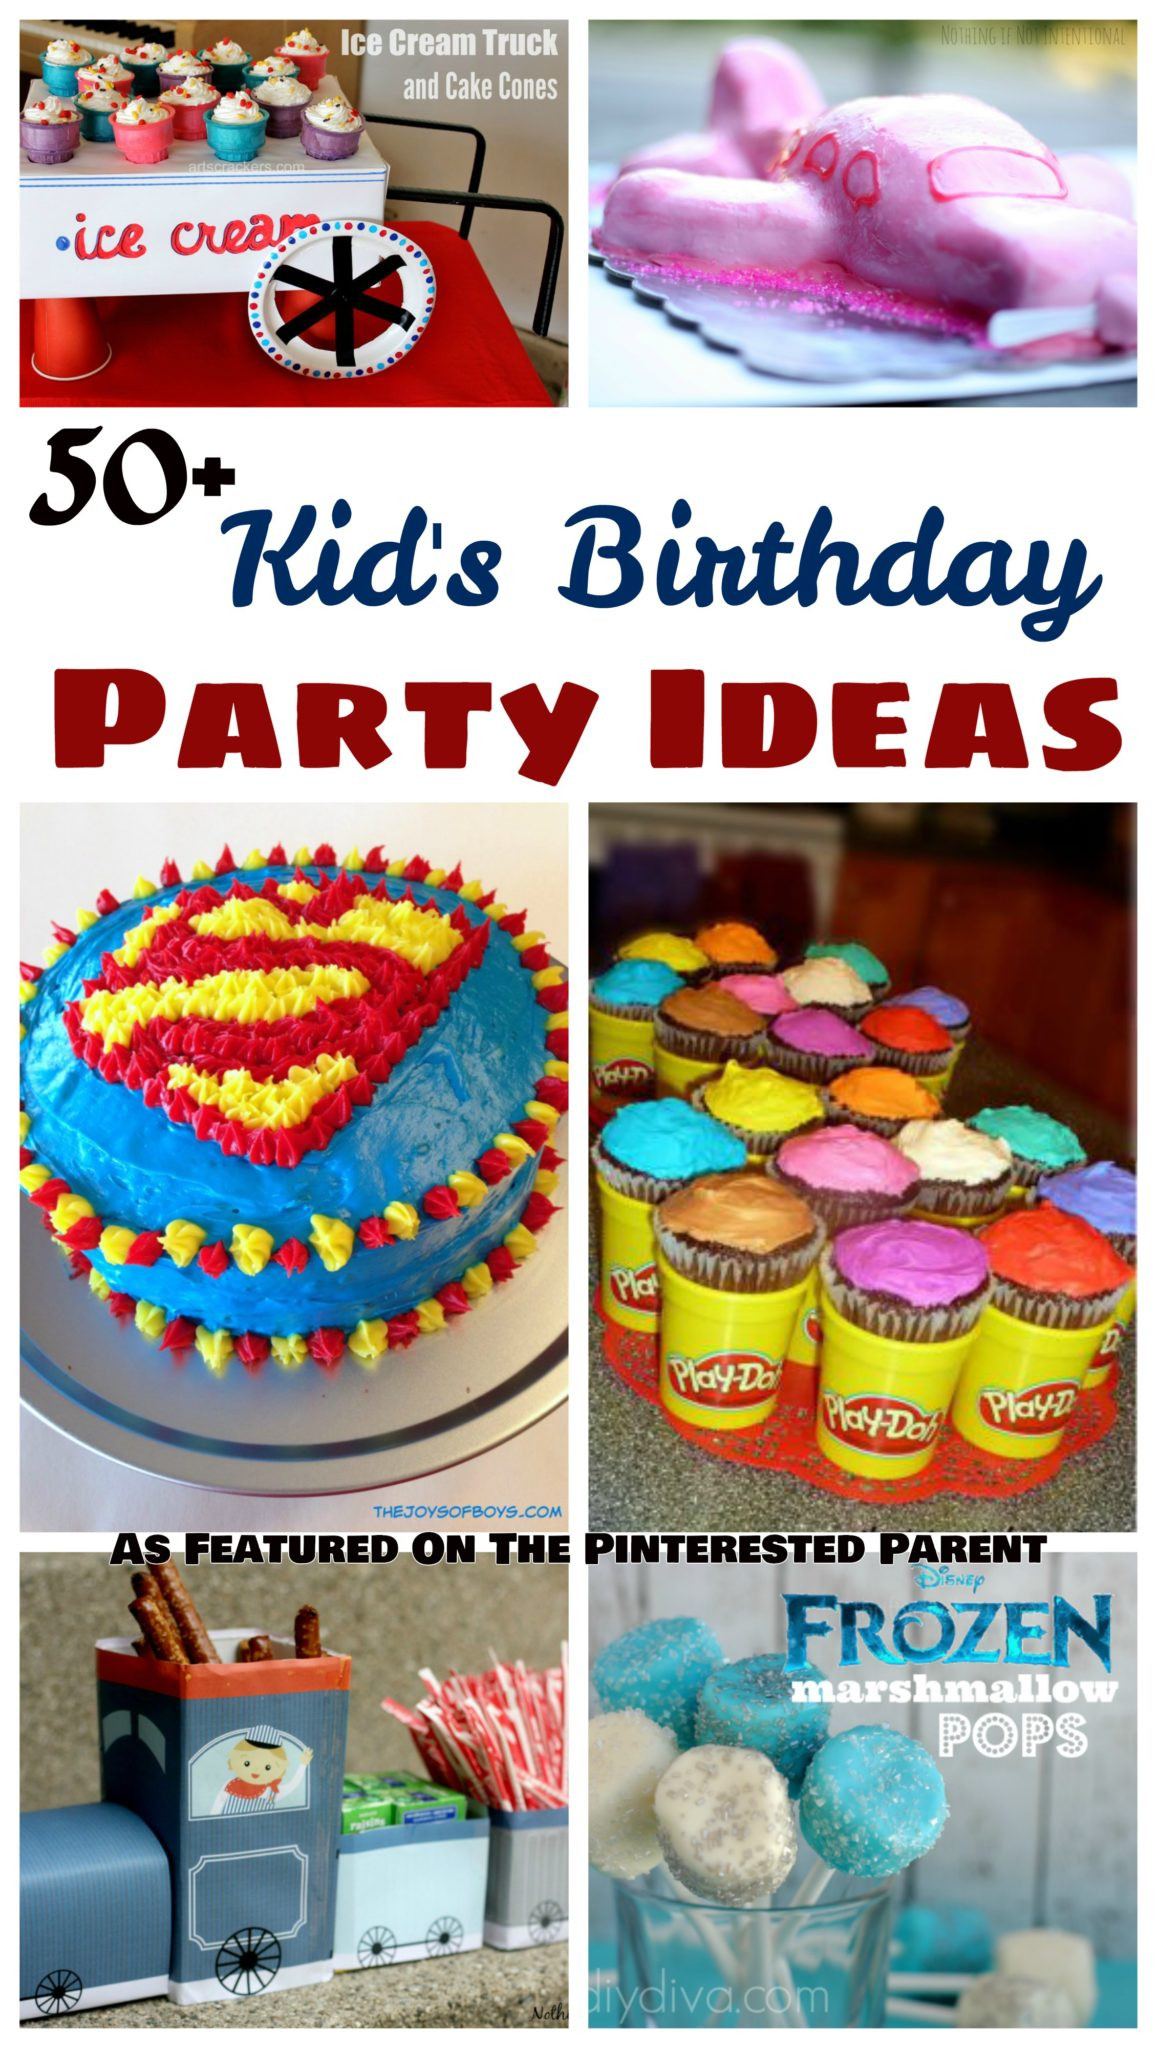 Birthday Party Themes For Kids  50 Kid s Birthday Party Ideas – The Pinterested Parent